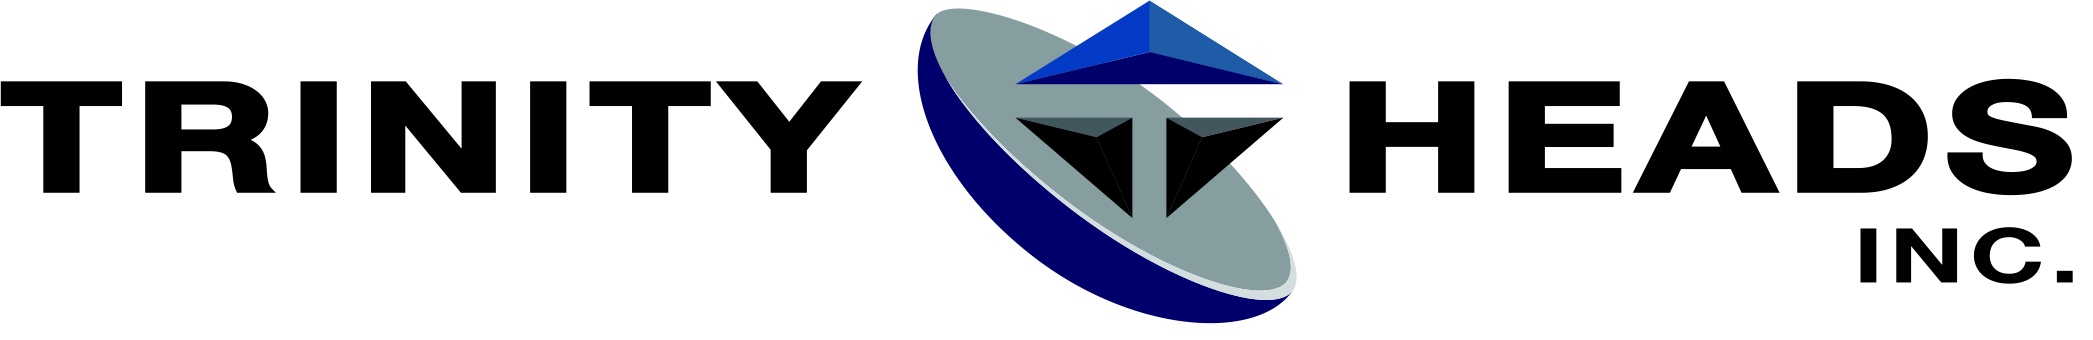 trinity-heads-logo.png